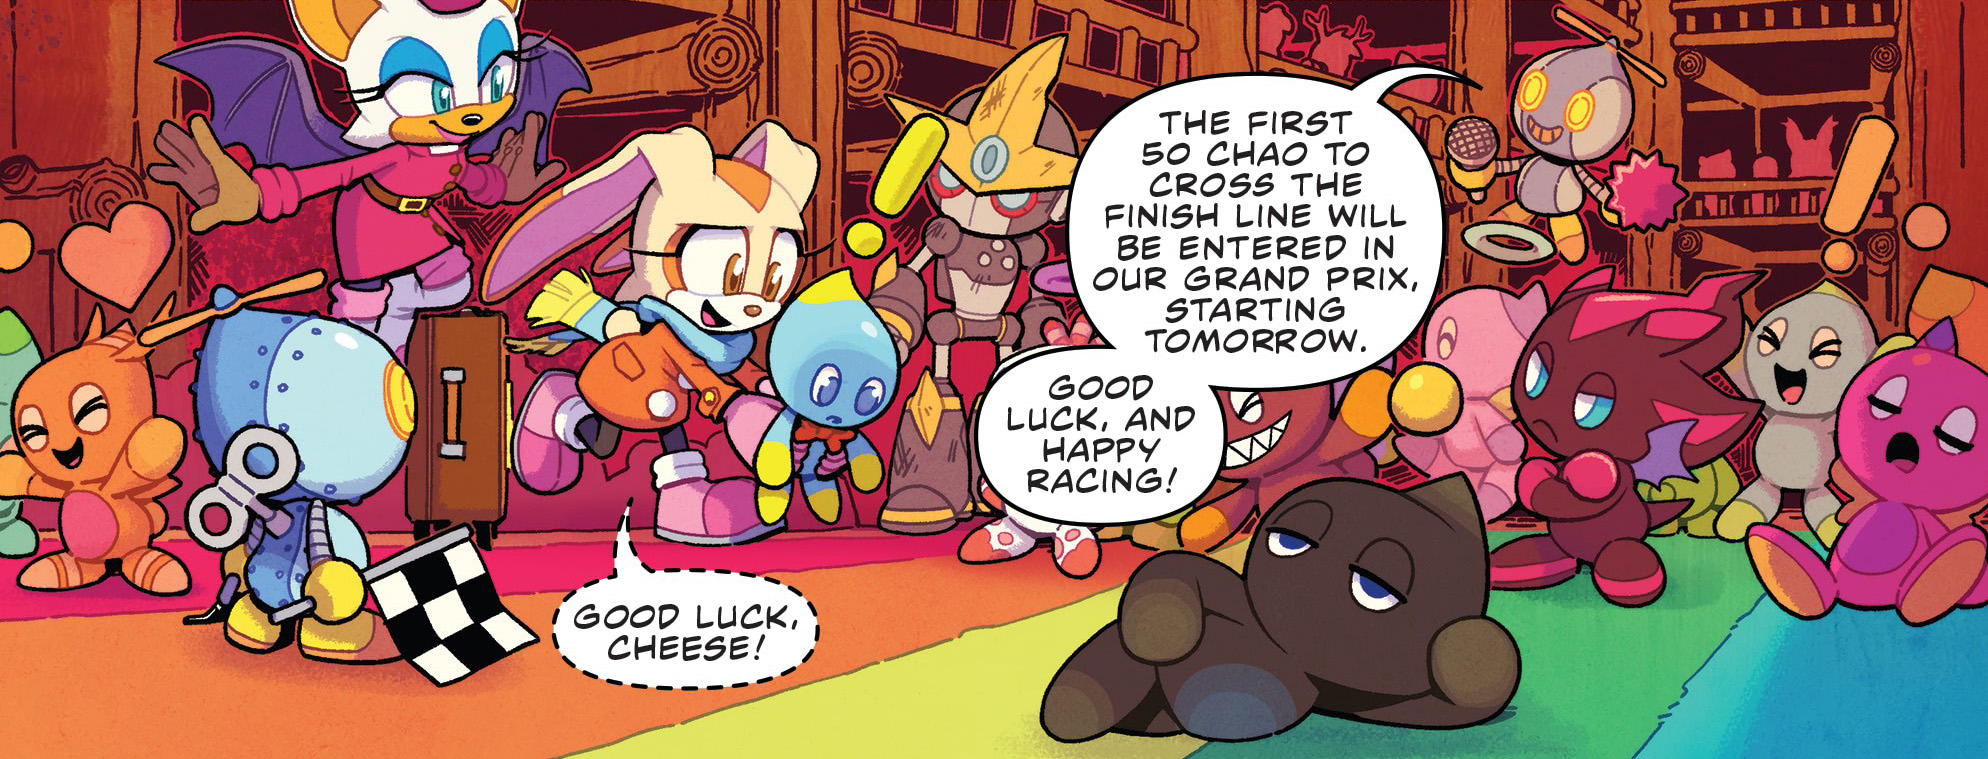 Chao (IDW)